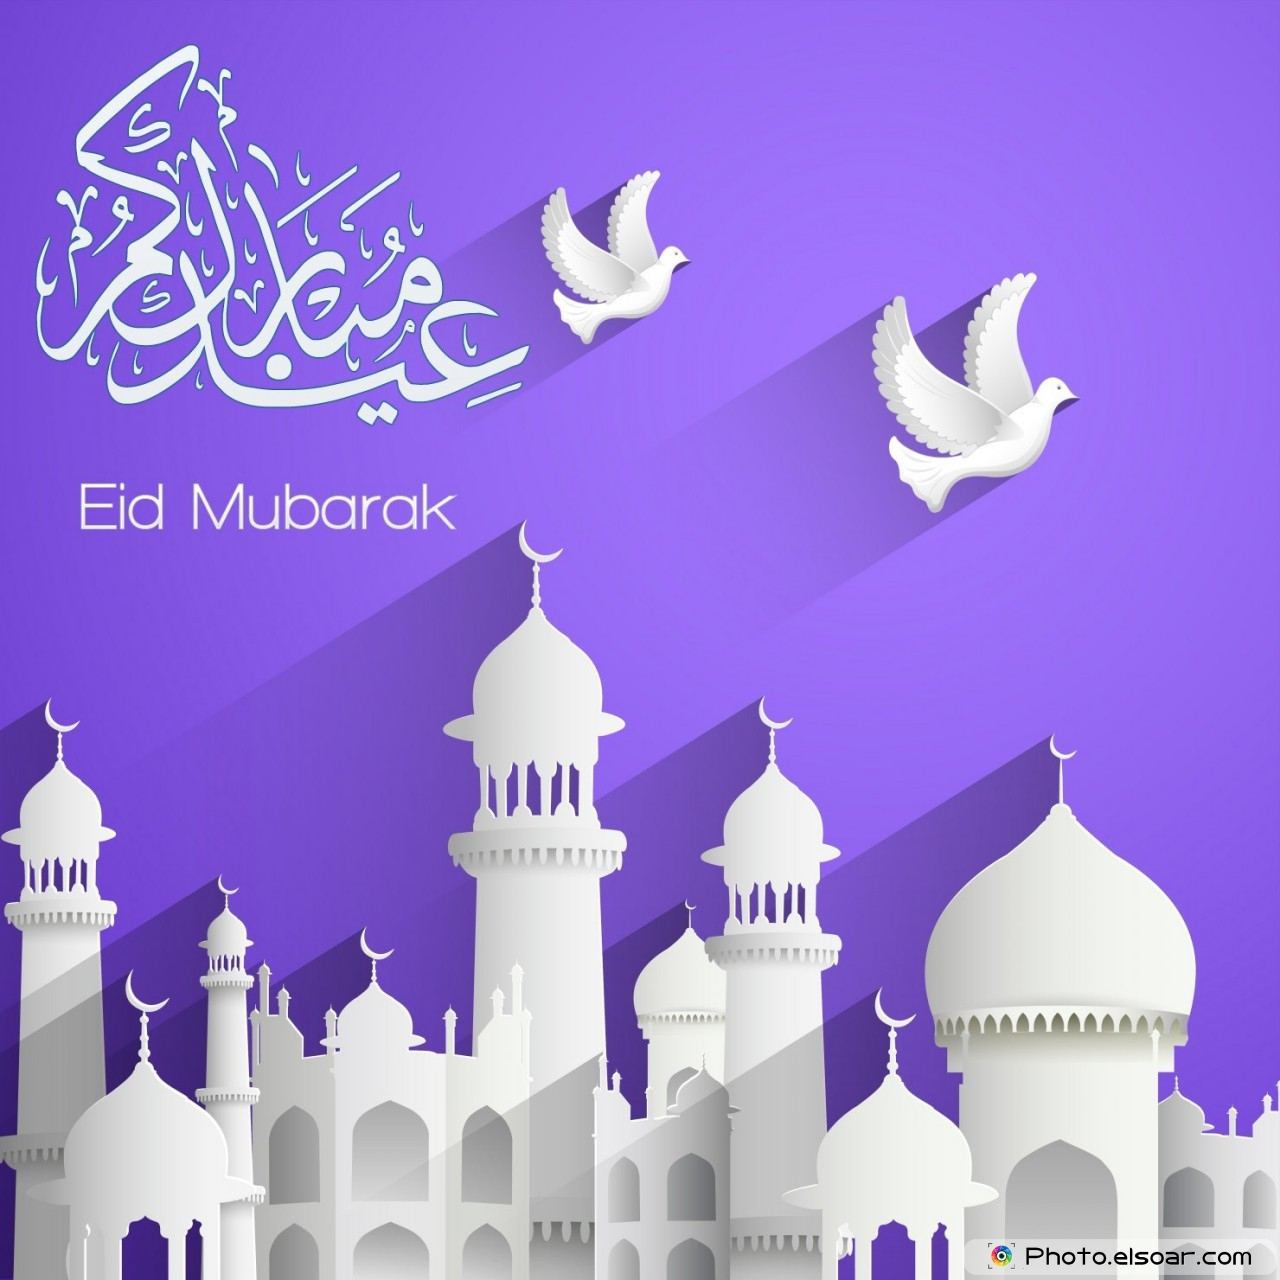 Free Desktop wallpaper Eid Mubarak